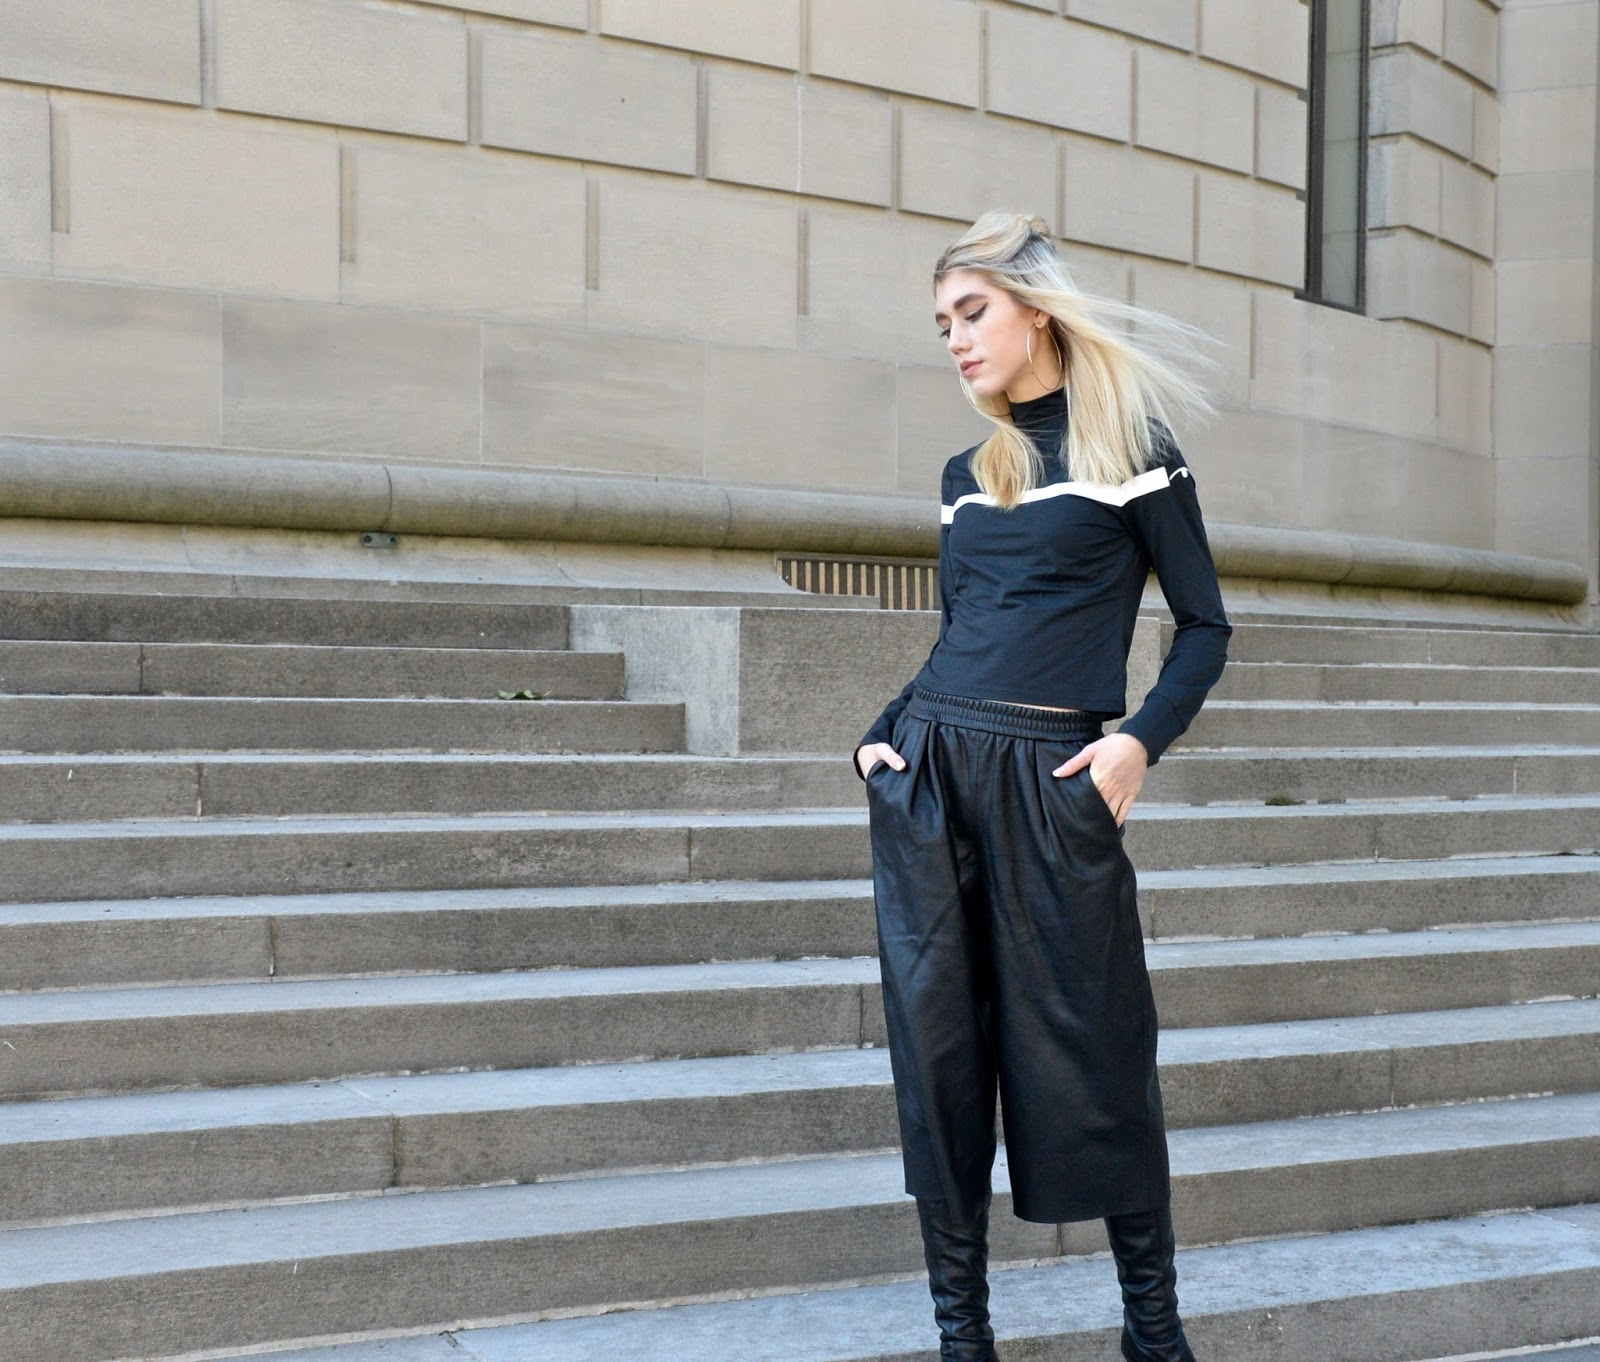 In a Chic athleisure inspired outfit posing in Chicago